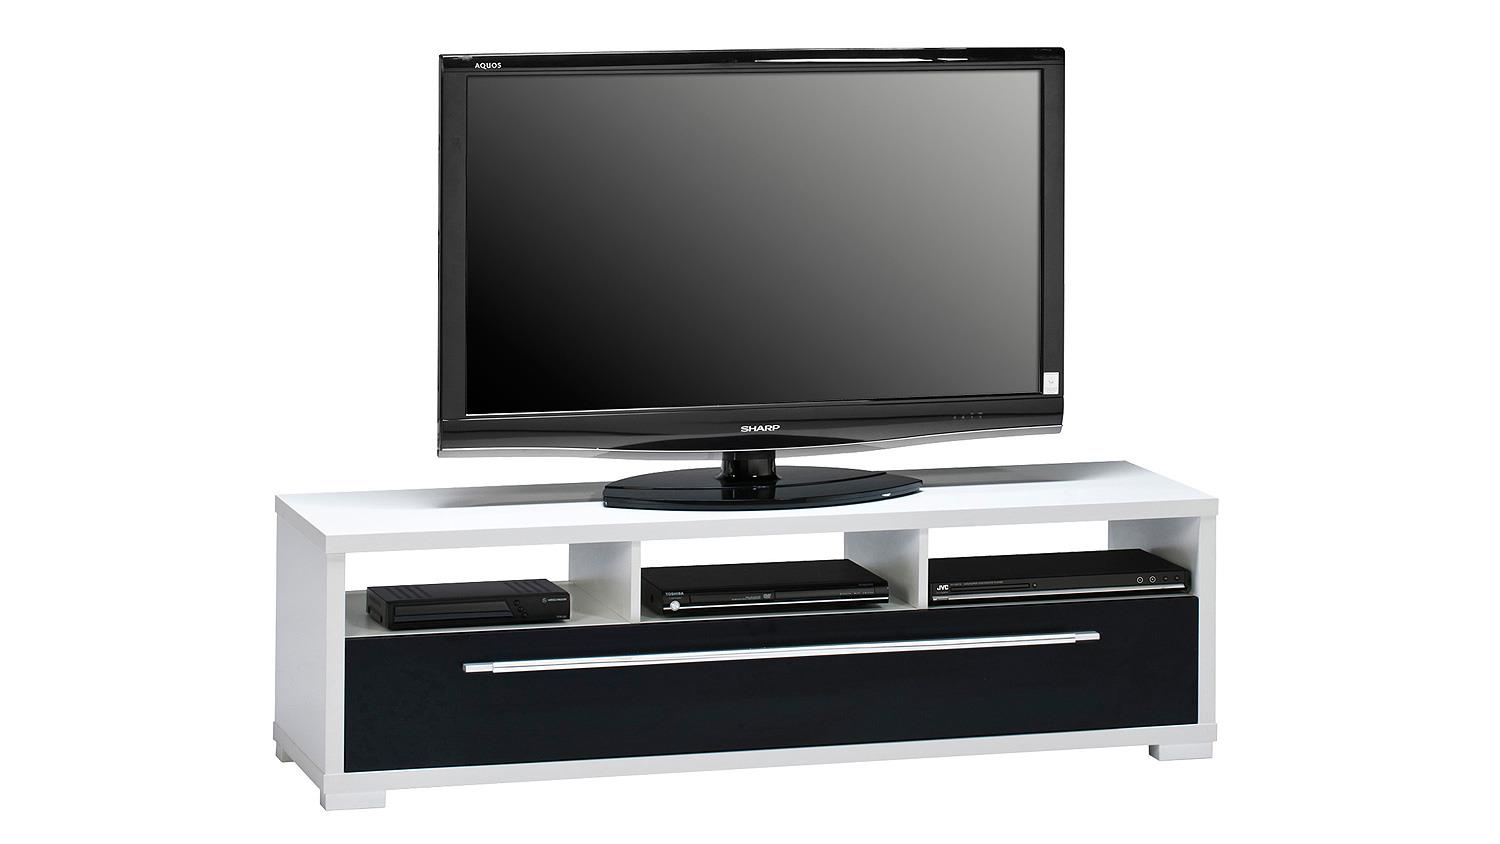 lowboard maja 7645 tv board wei schwarz hochglanz. Black Bedroom Furniture Sets. Home Design Ideas